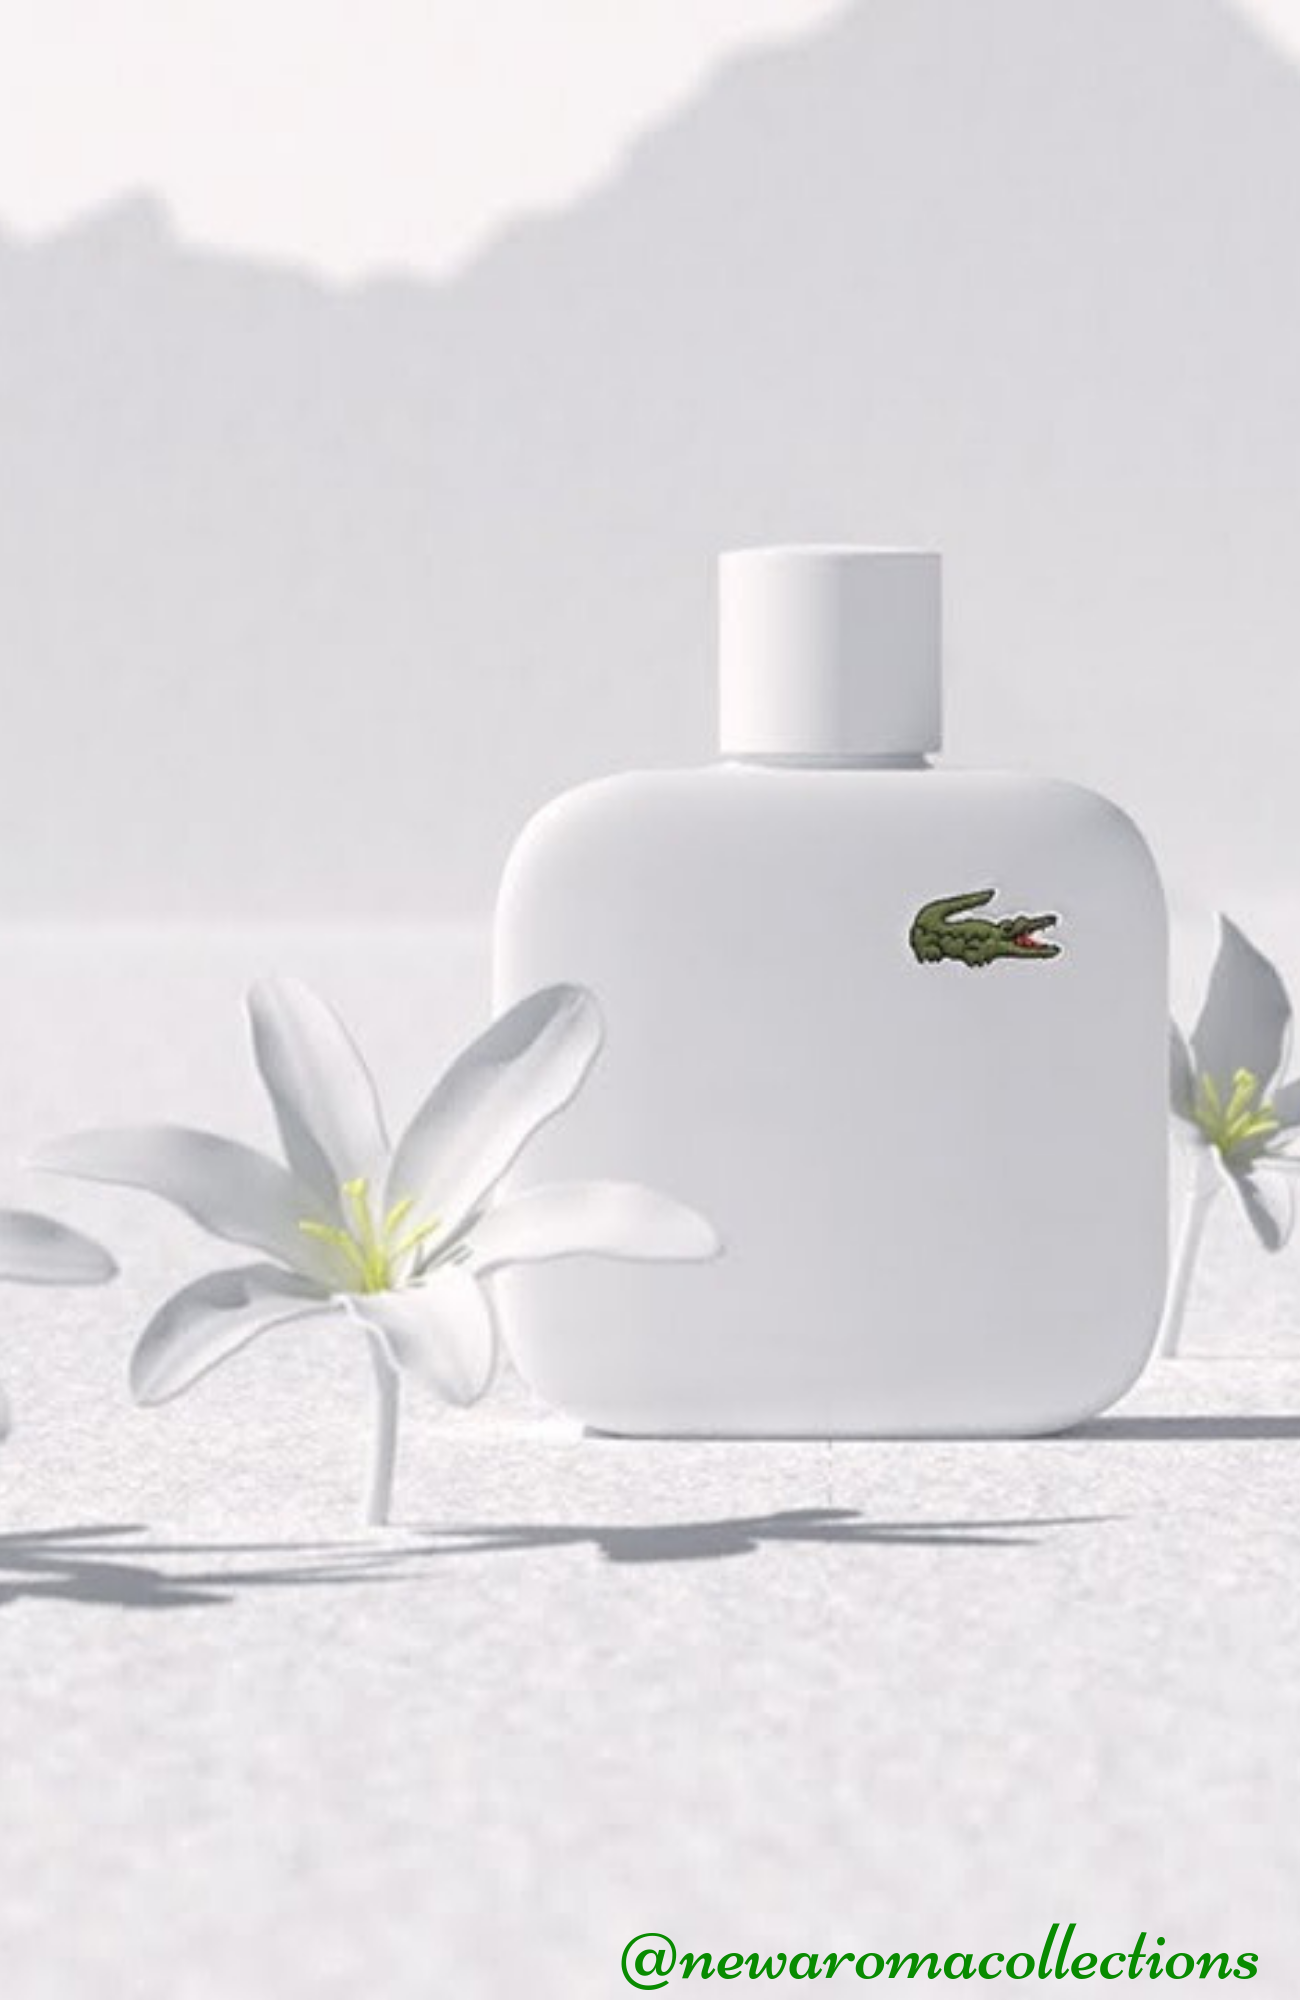 Men Who Want To Display The Ultimate In Timeless Sophistication Wear The Fragrance Of Lacoste Eau De Lacoste L 12 12 B Perfume Fragrances Perfume Pure Products